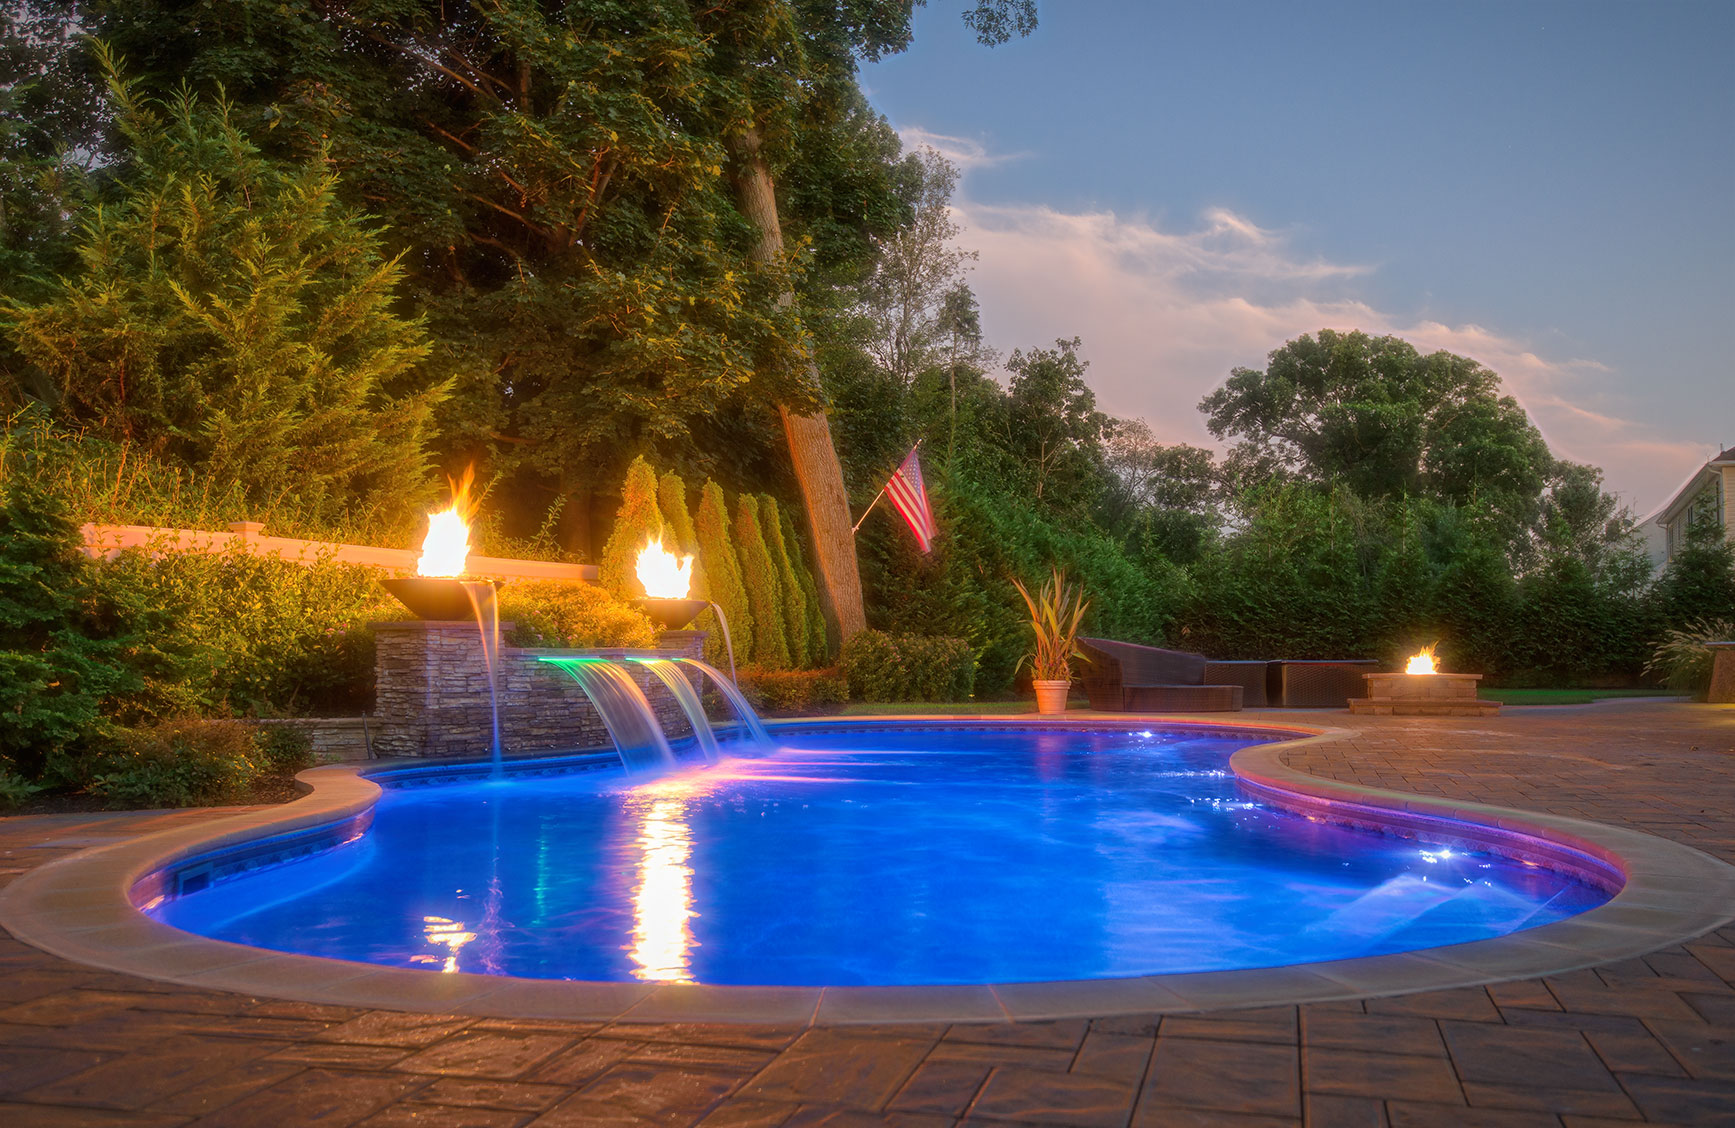 Special features can enhance the poolscape year-round